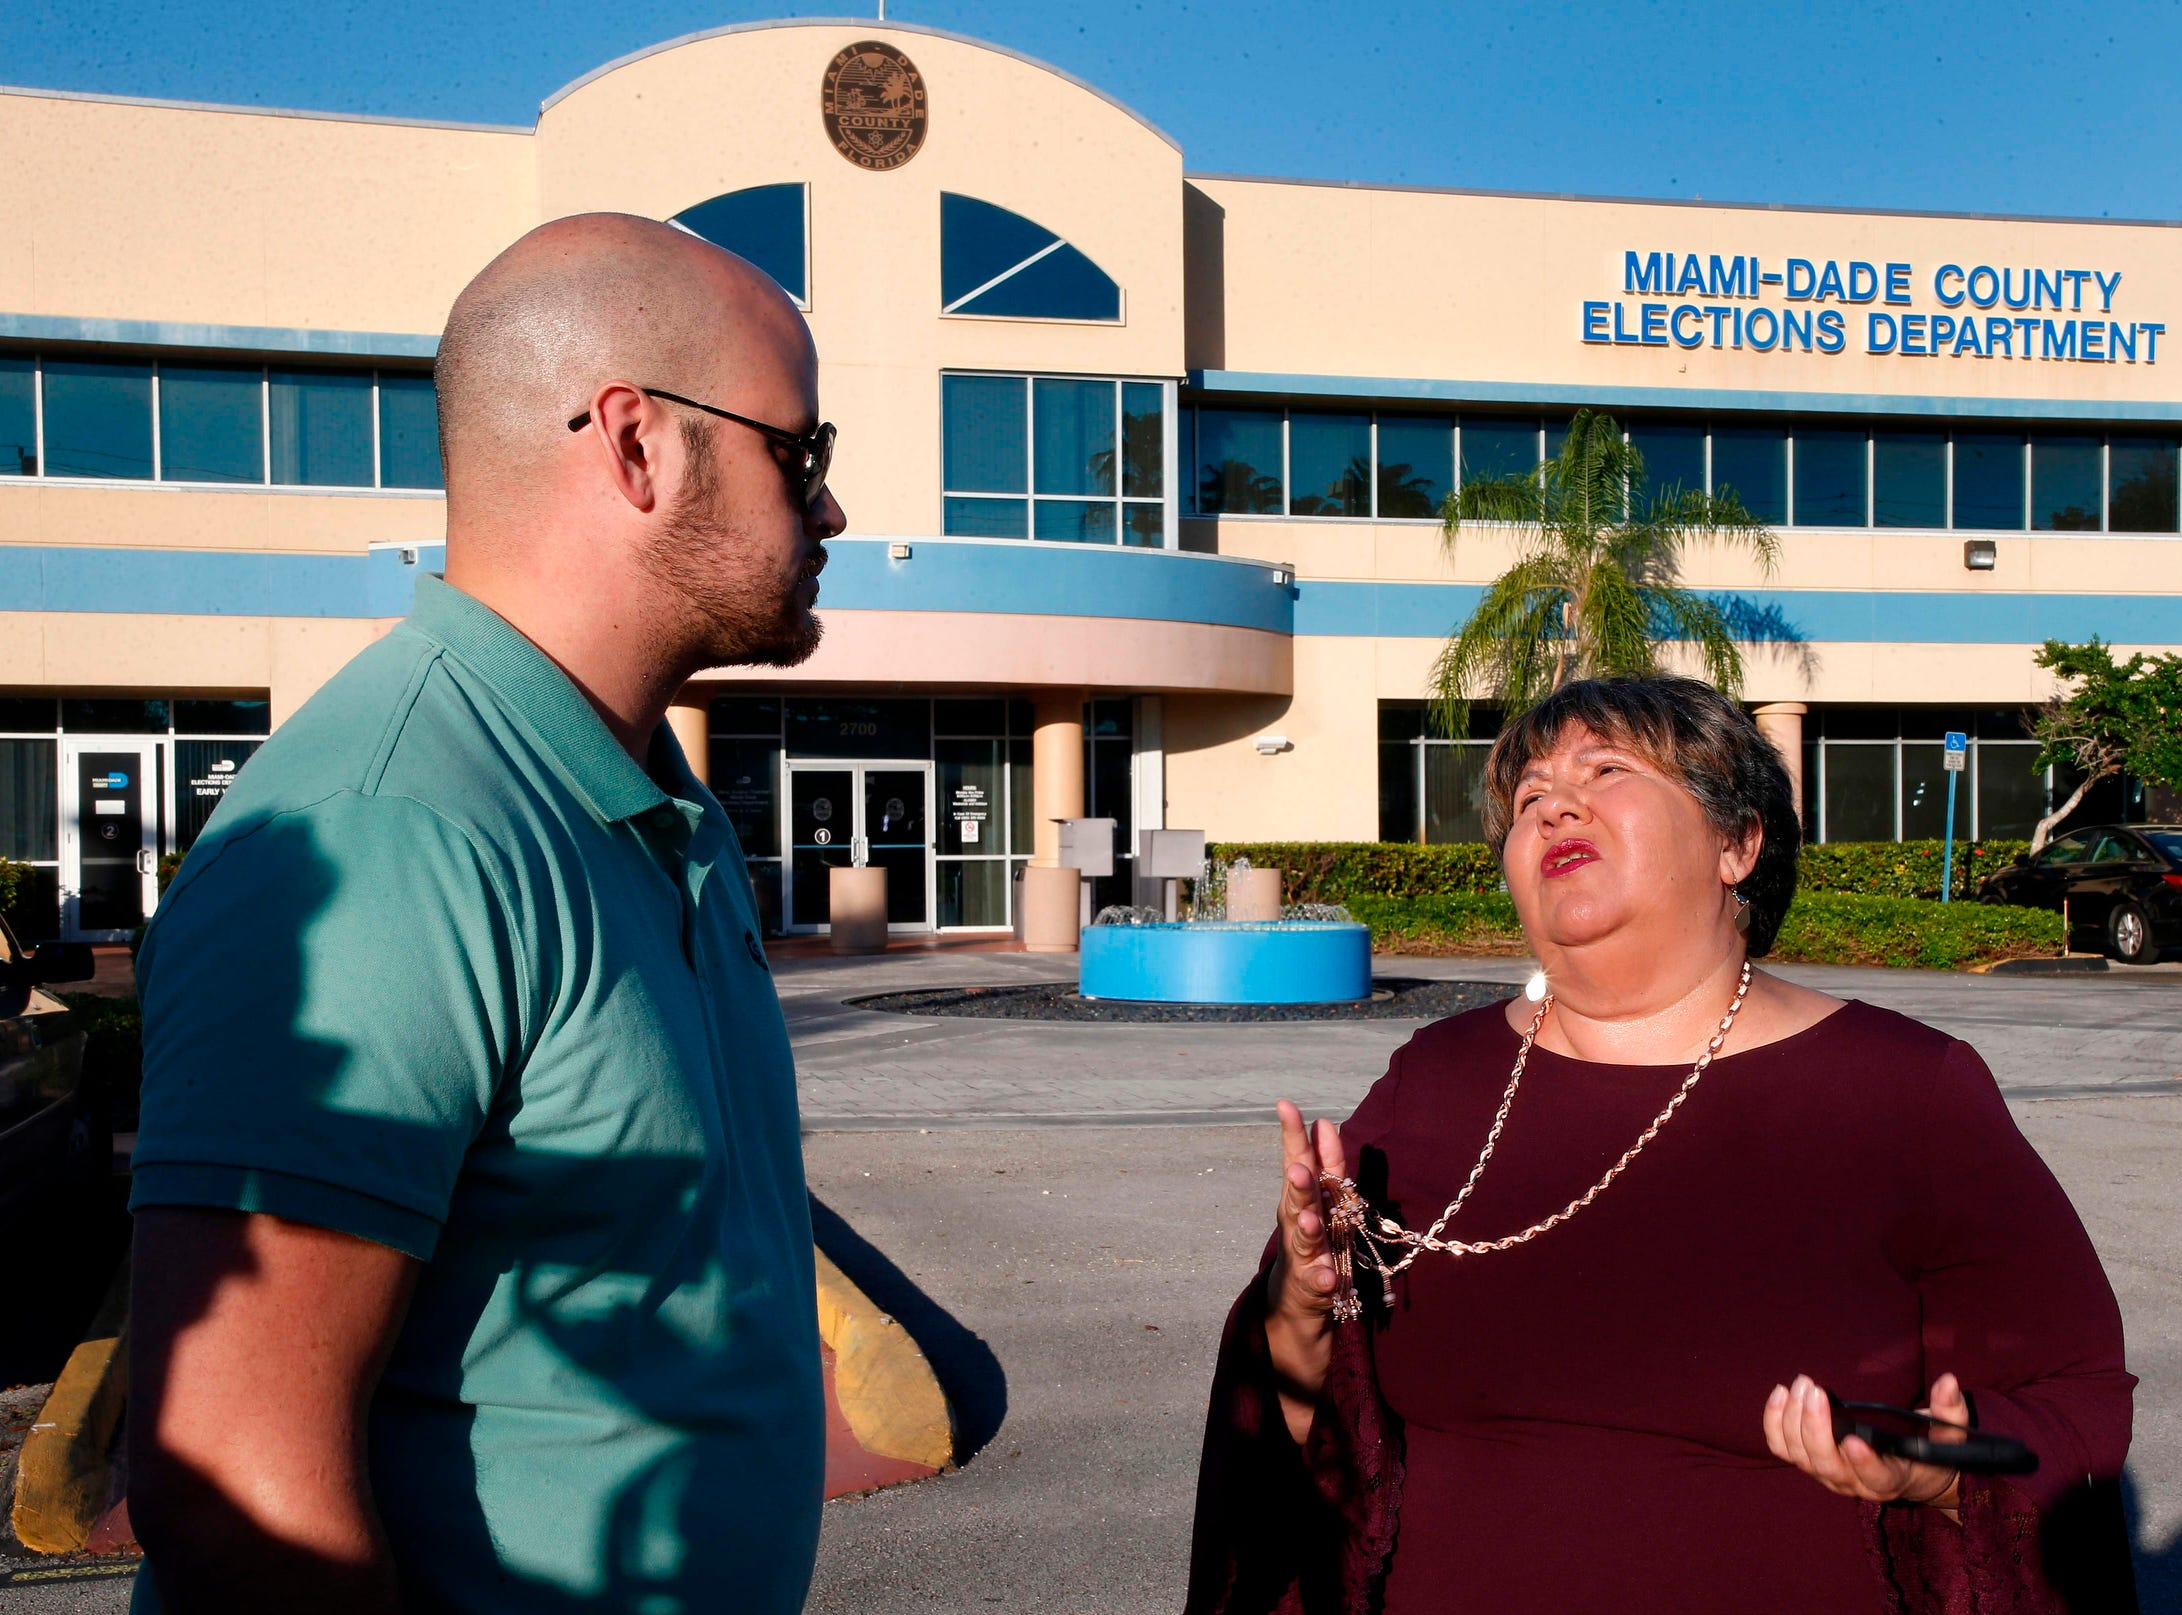 Convicted felons Daniel Torna (L) and Yraida Guanipa (R) share stories before heading in to the Miami-Dade County Elections Department to register to vote in Miami, Tuesday.  Some 1.4 million people in Florida can begin registering to vote on Tuesday after the state's electorate ended a measure banning suffrage for people with felony convictions.